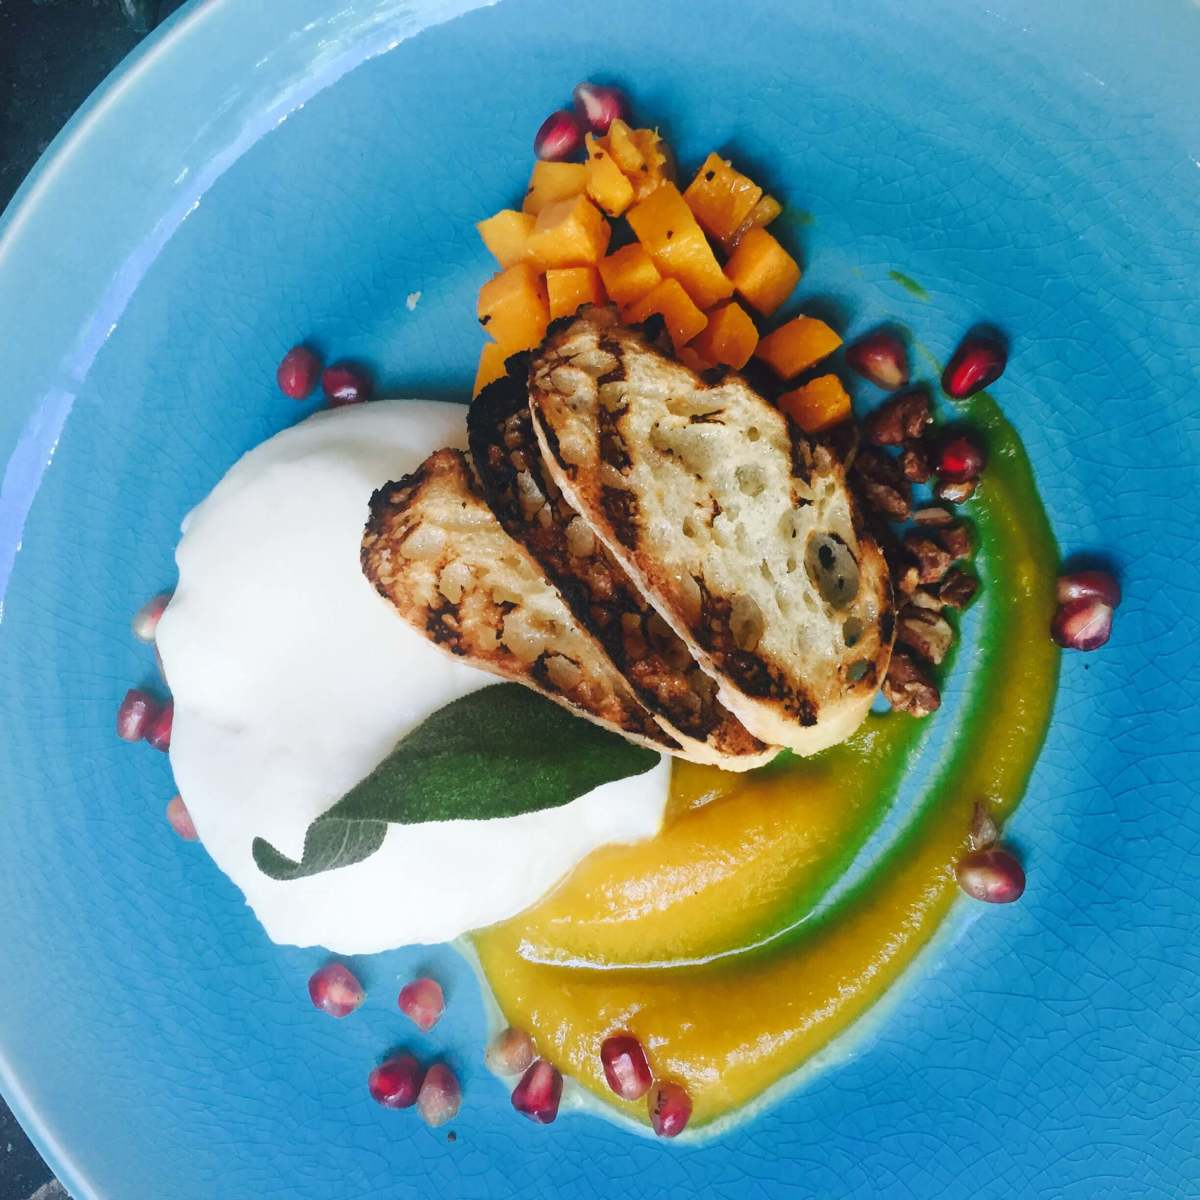 Parigi Dallas butternut burrata